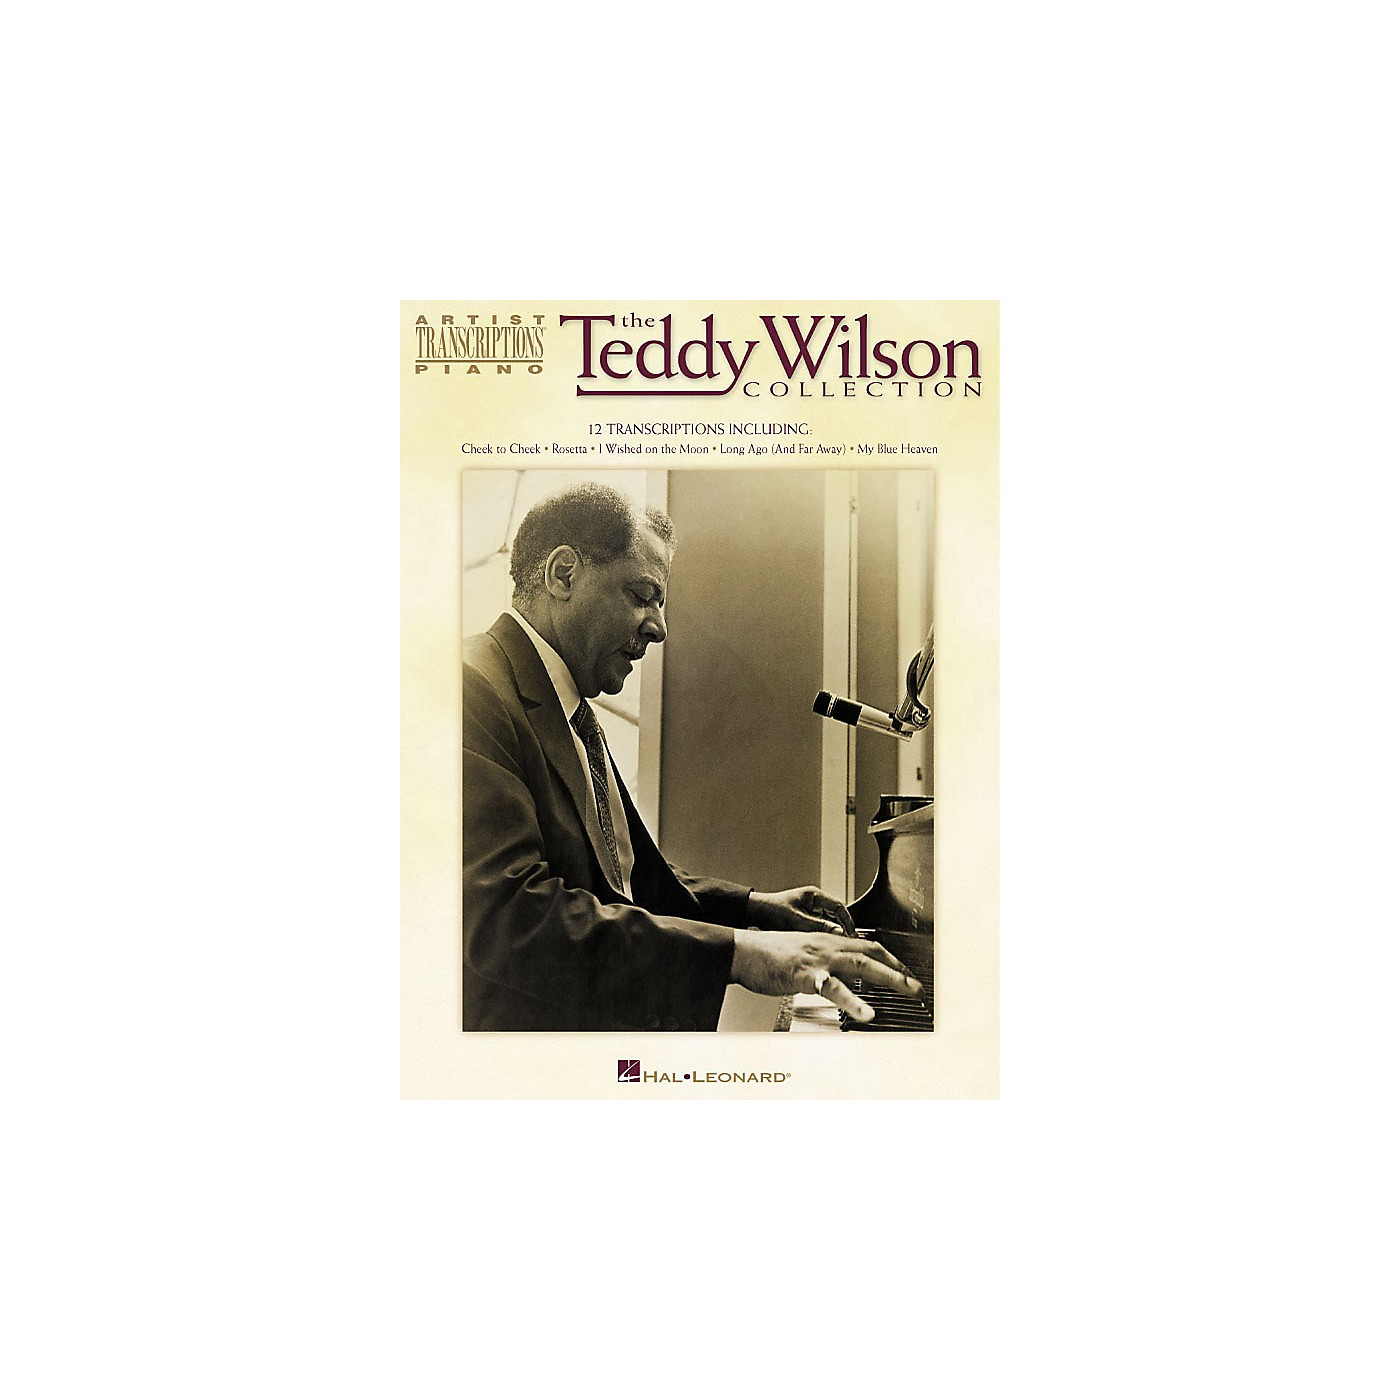 Hal Leonard The Teddy Wilson Collection Artist Transcriptions Series Performed by Teddy Wilson thumbnail